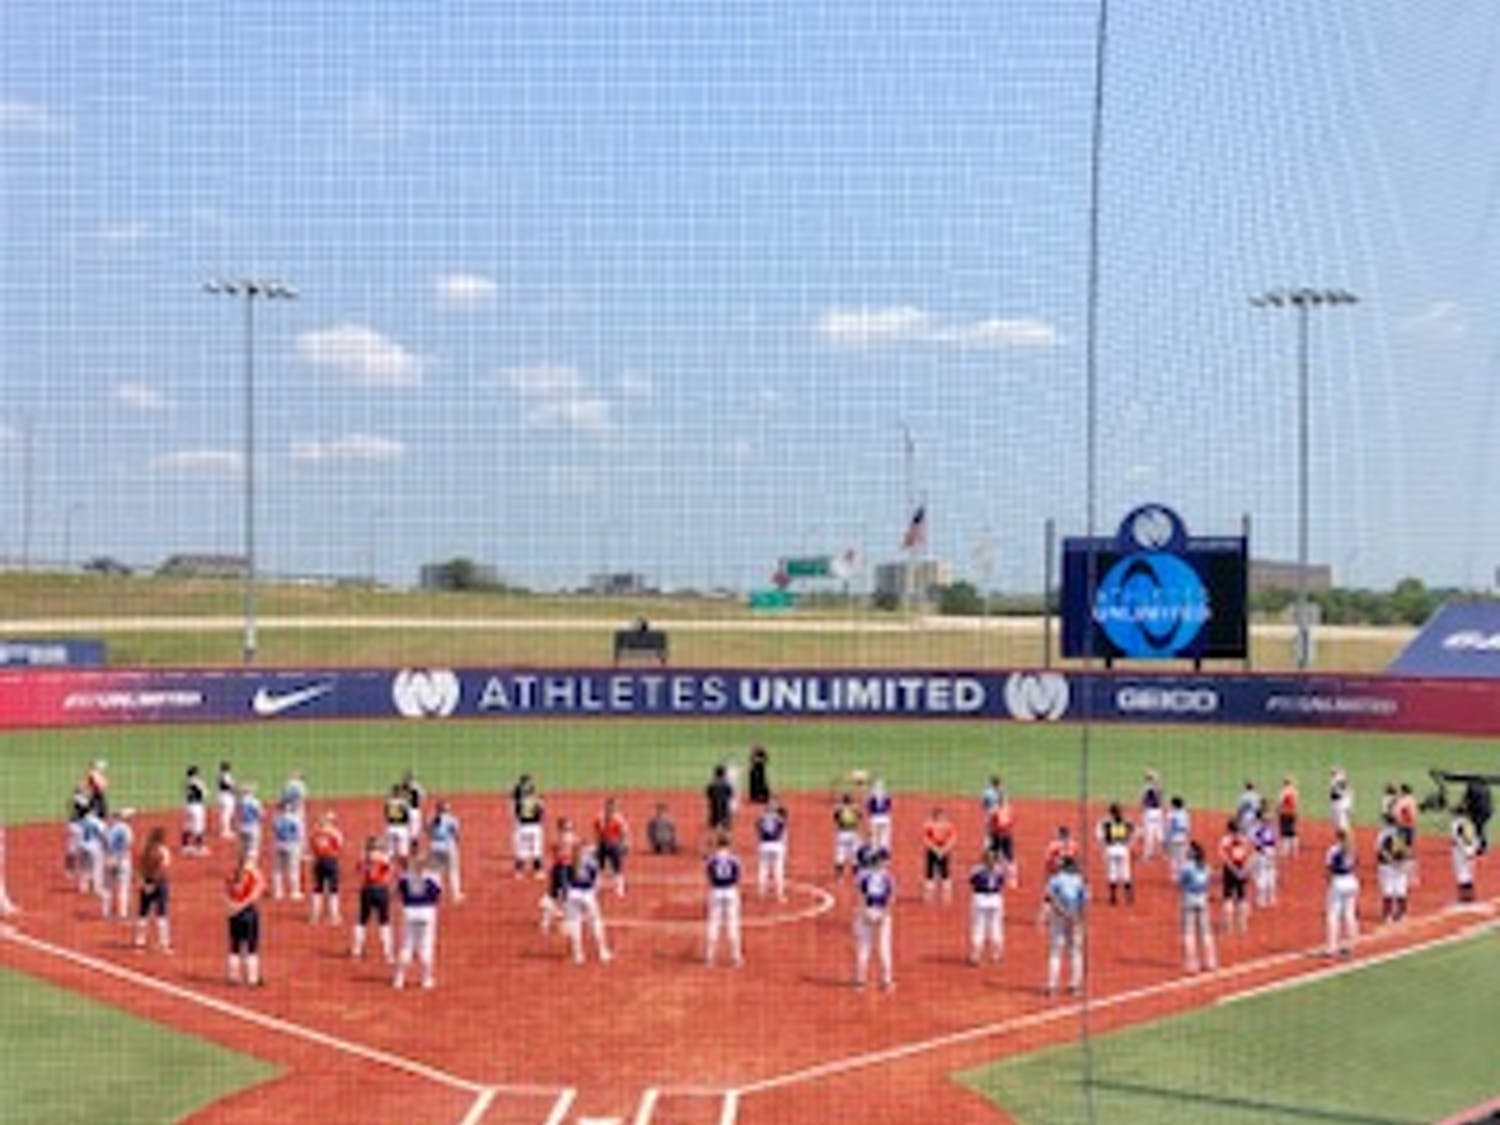 Players participate in the closing ceremony of Athletes Unlimited's summer softball league this past summer. Photo courtesy of Athletes Unlimited.